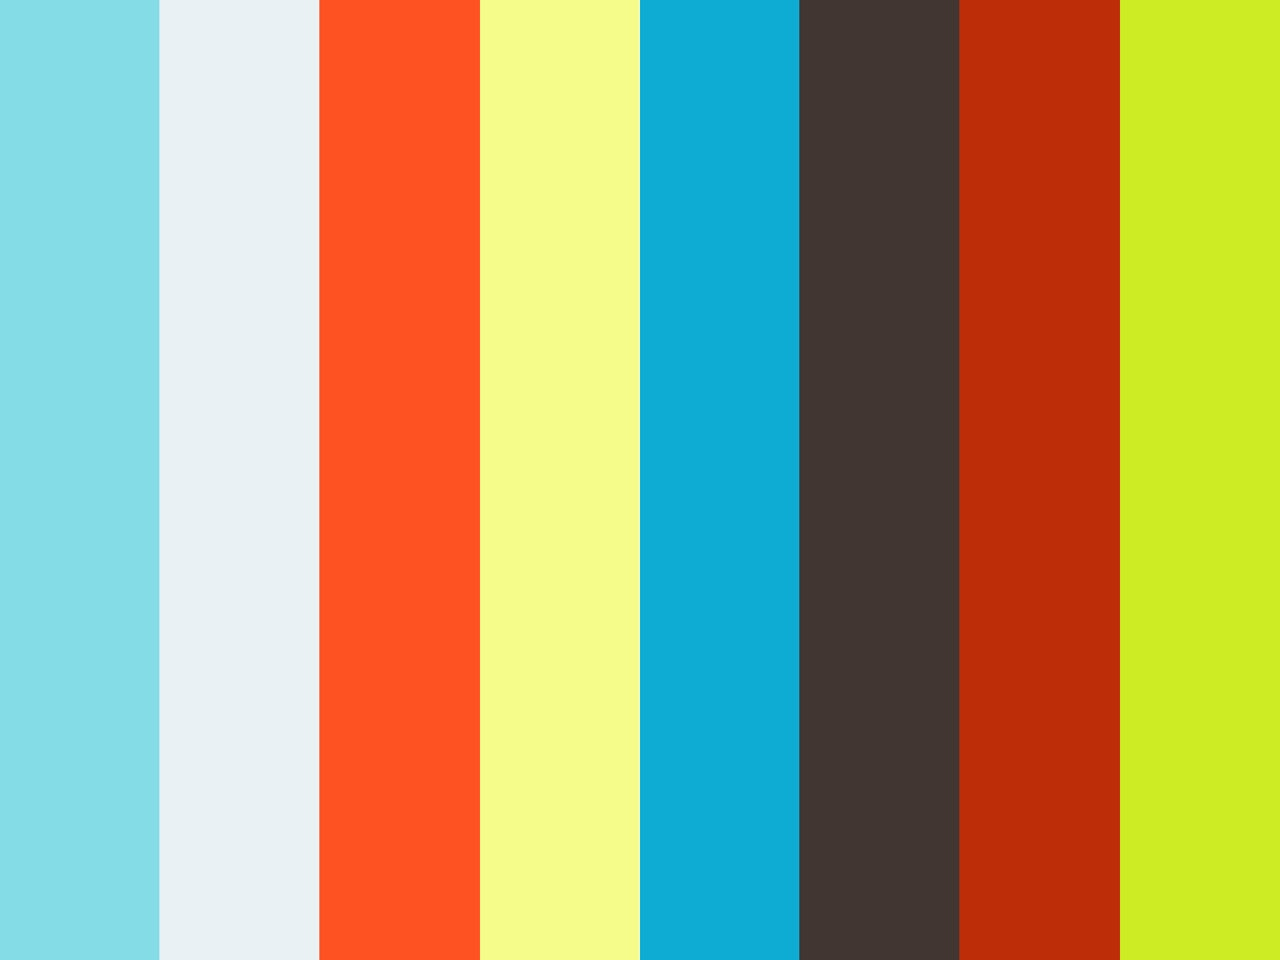 The Pharr City Commission Meeting September 1st, 2015